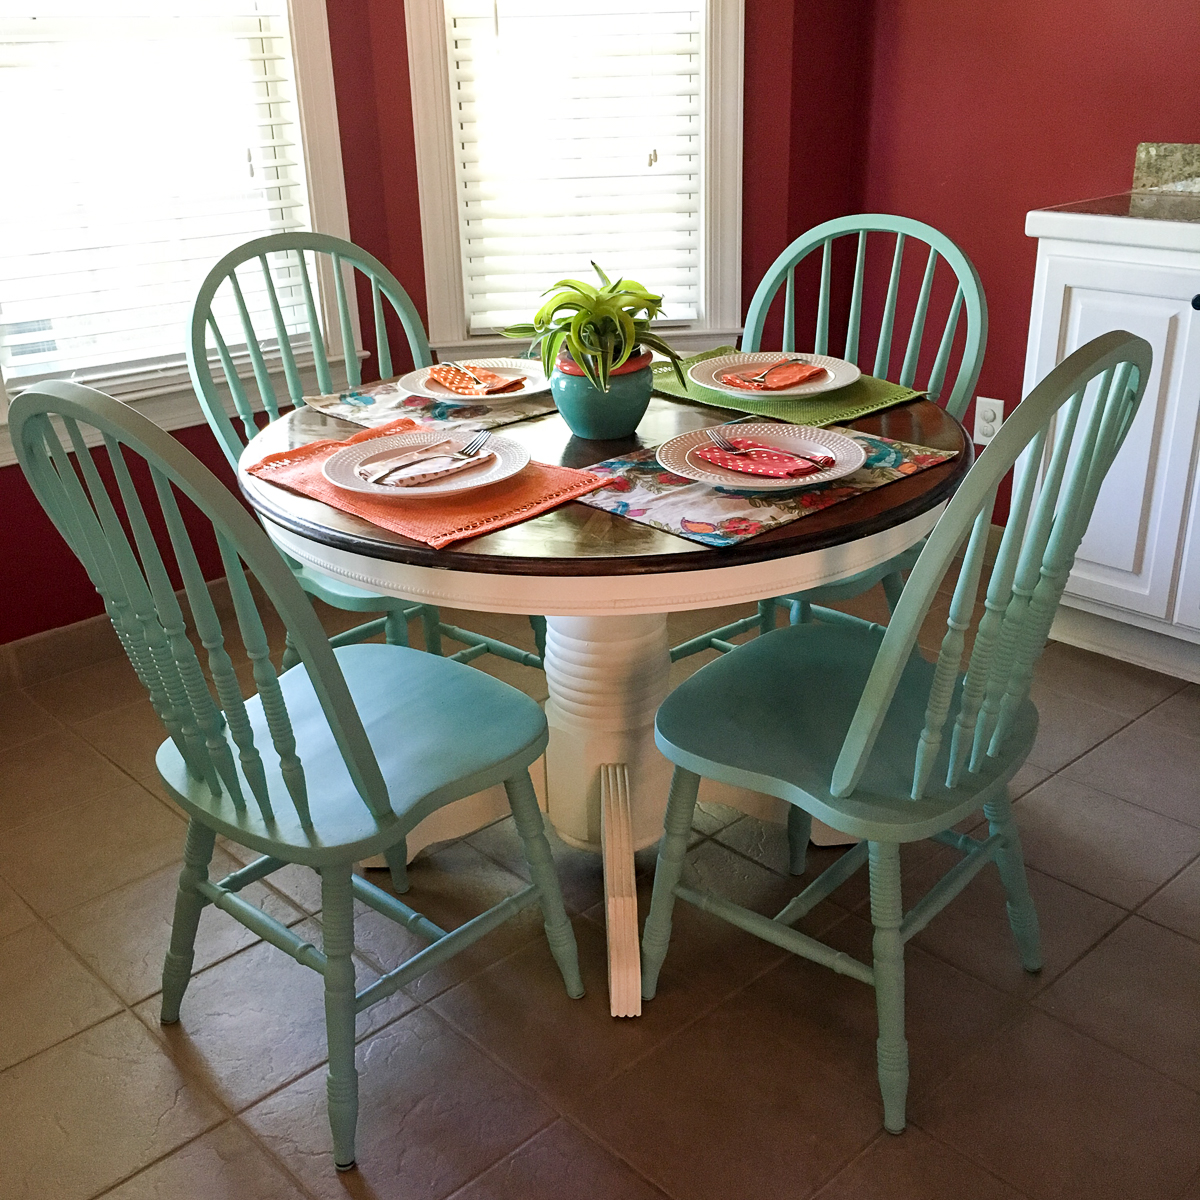 Tisch Lackieren Turquoise And White Kitchen Table